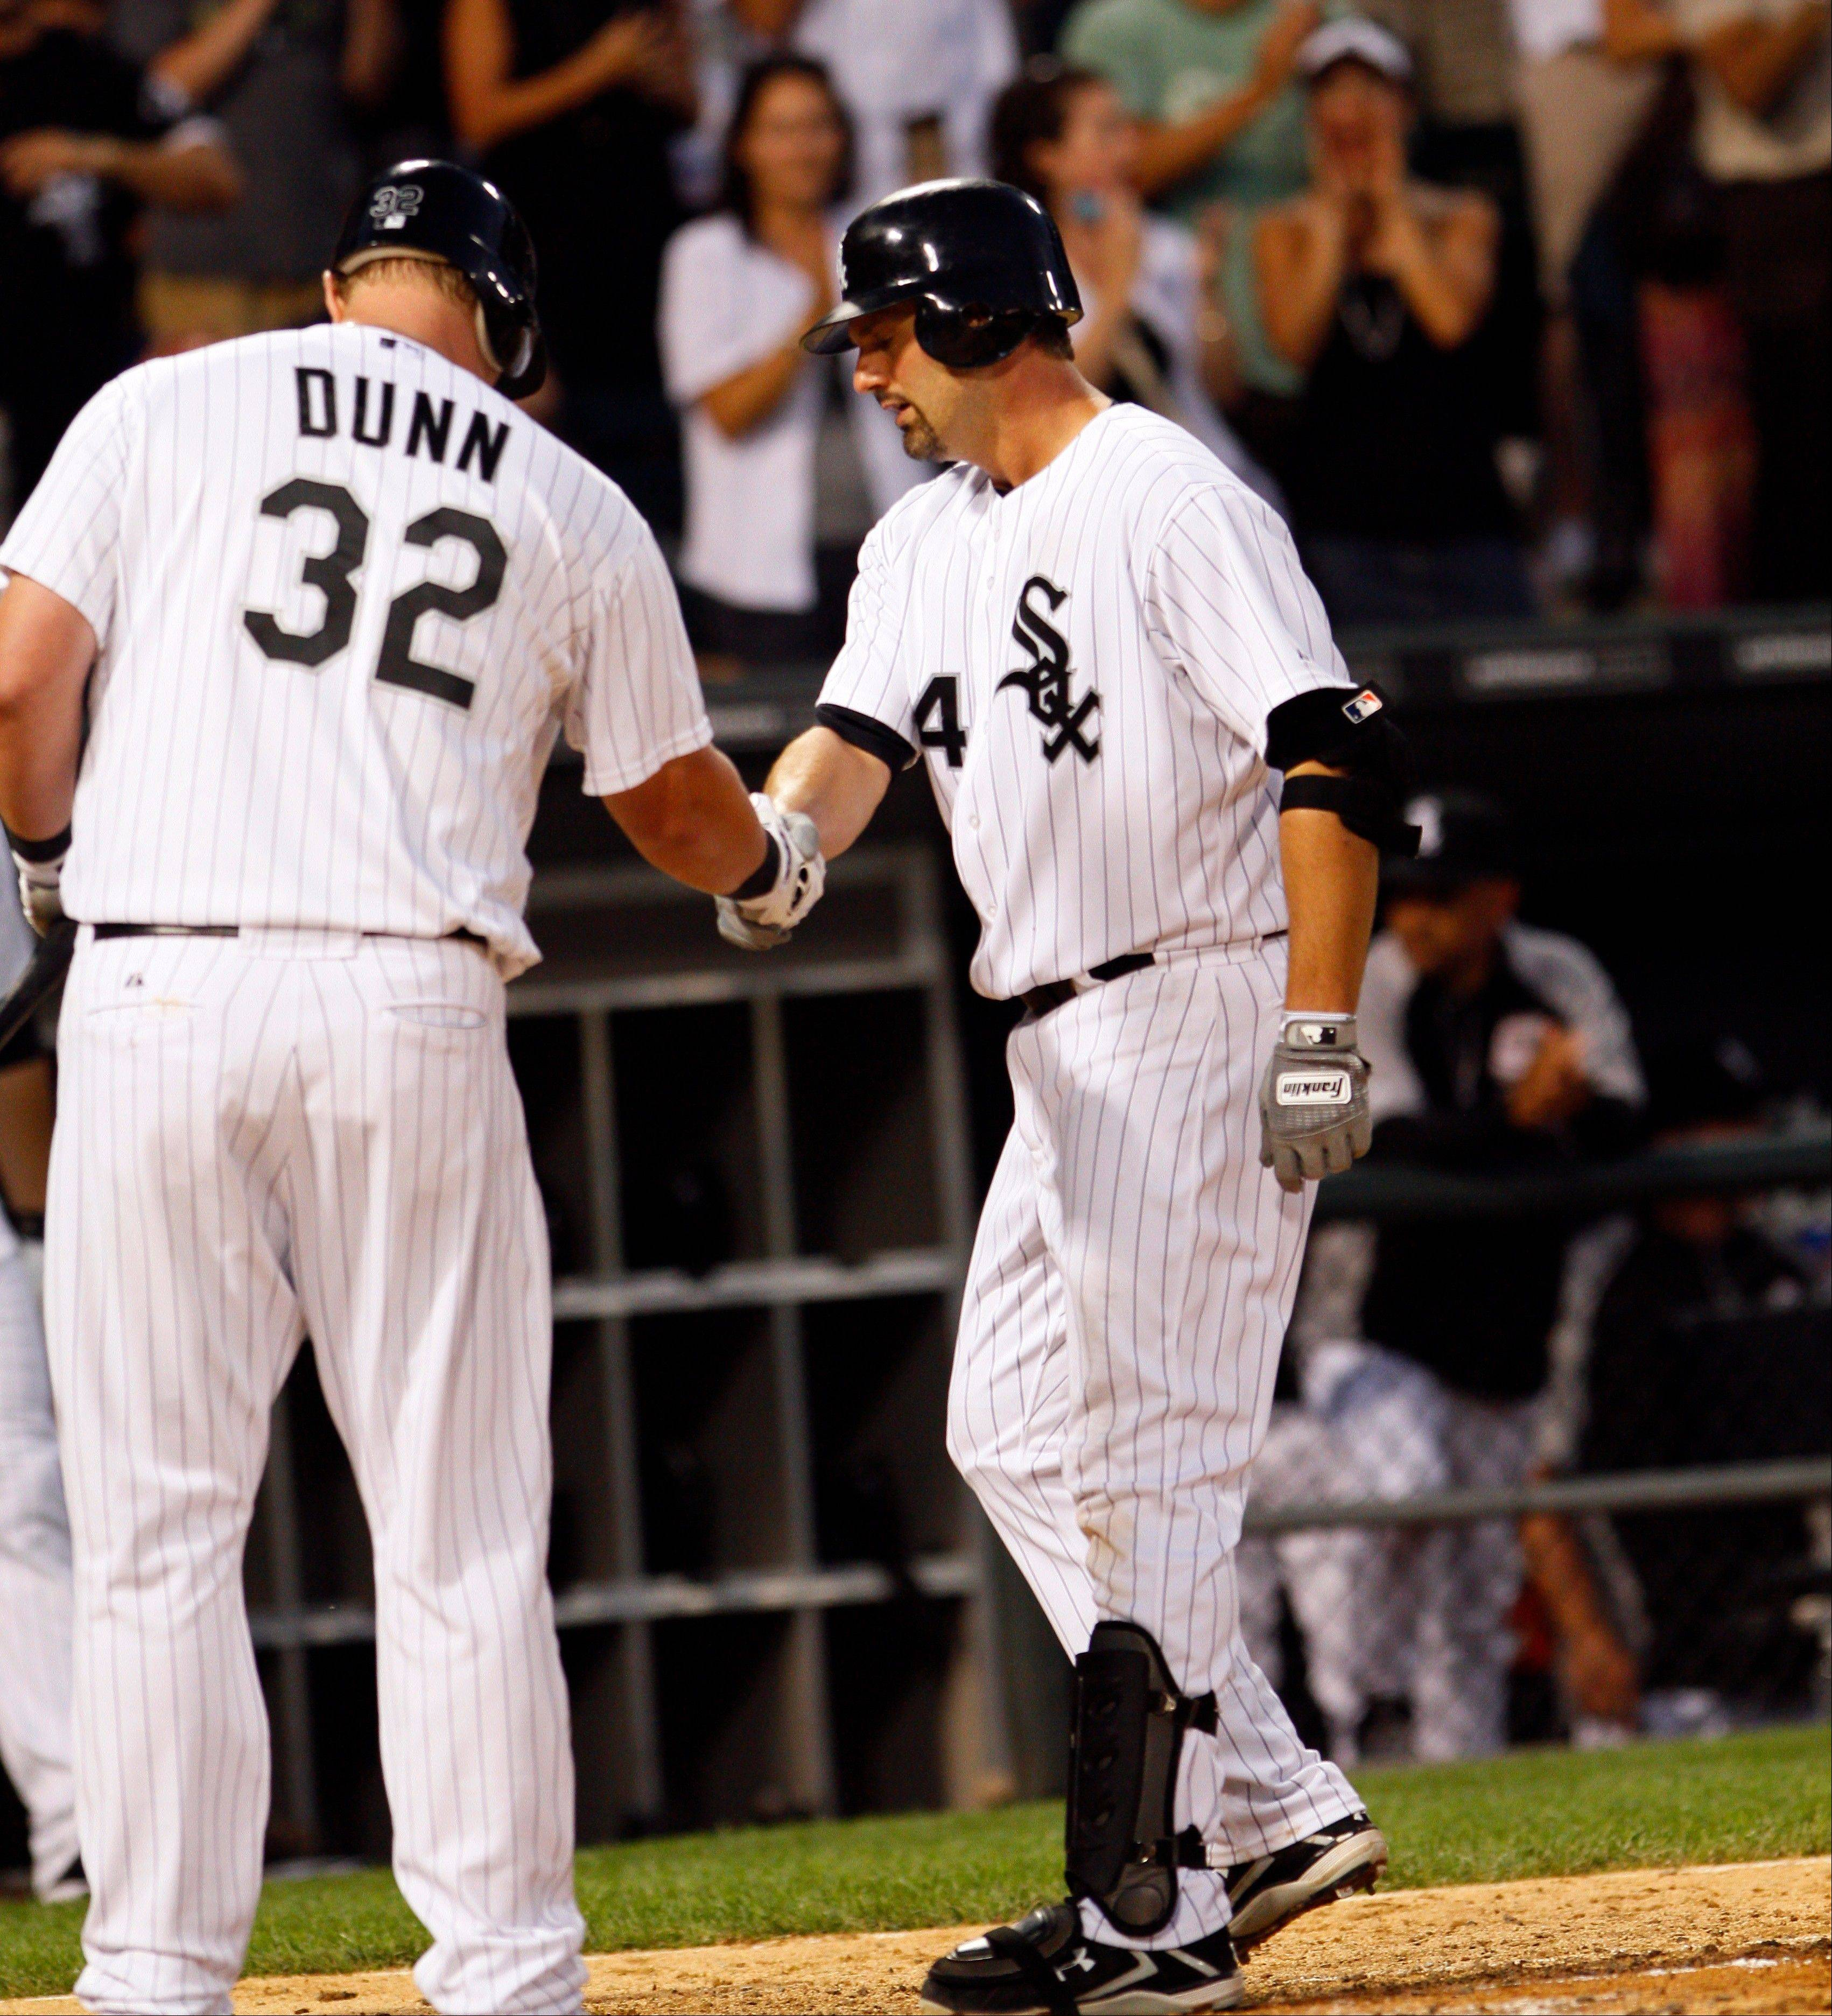 The White Sox�s Paul Konerko, right, gets a handshake from teammate Adam Dunn after hitting a solo home run in the seventh inning against Red Sox on Saturday night at U.S. Cellular Field.